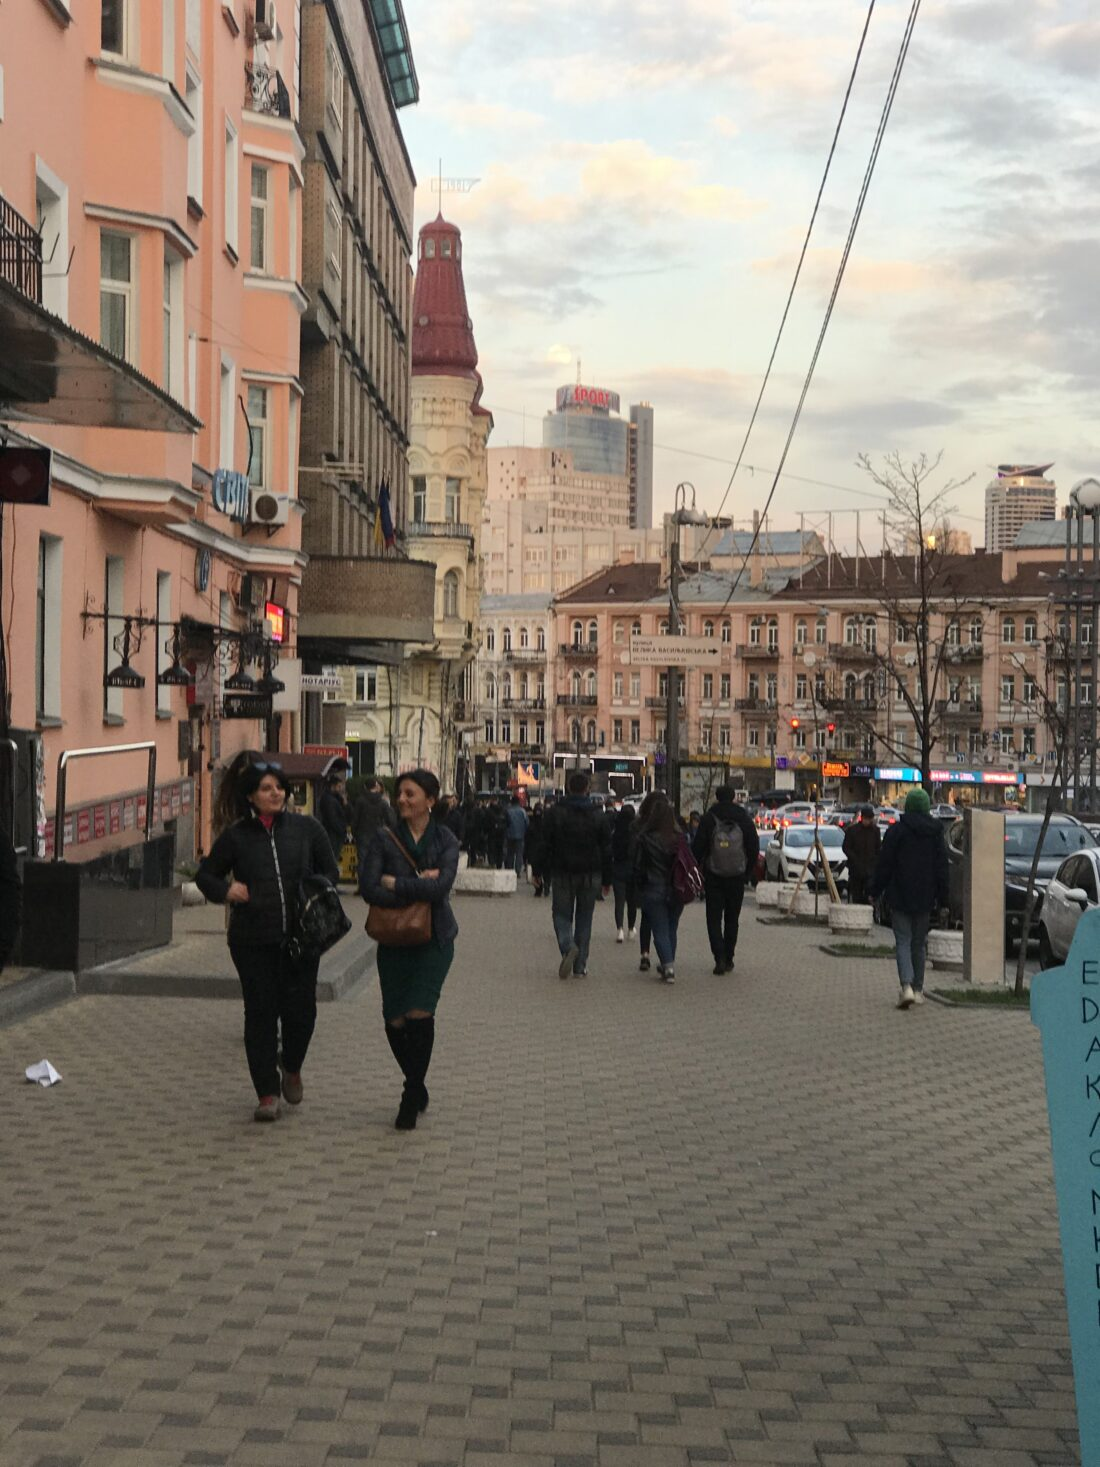 Twilight falling on this pretty block in Kiev not far from where protesters gathered.